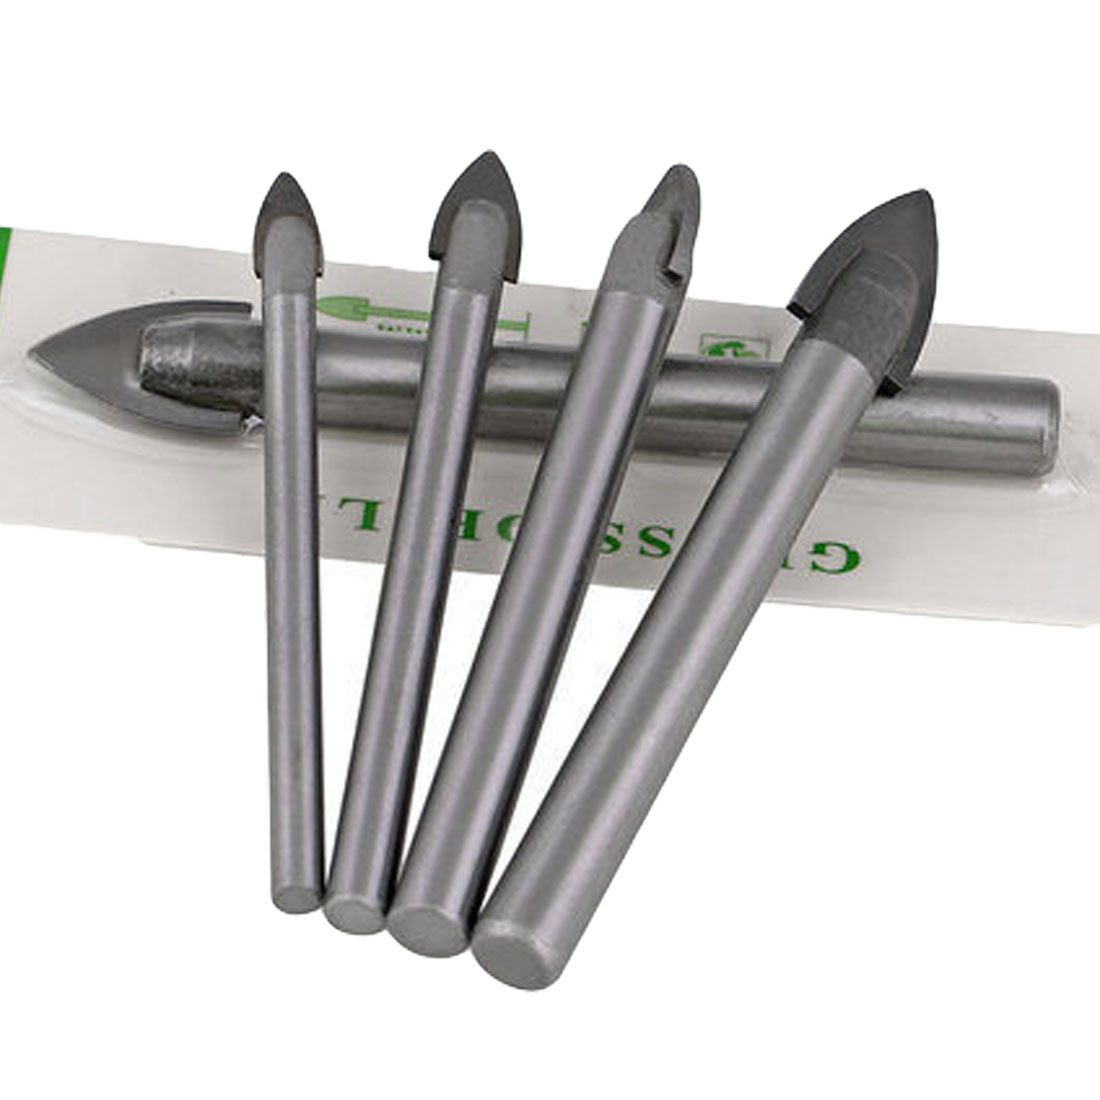 цена на Drill Bit 3/4/5/6/8/10/12mm Carbide Tip 1pc Drill Bit Cut Tool Professional Ceramic/ Tile /Marble/ Mirror Glass